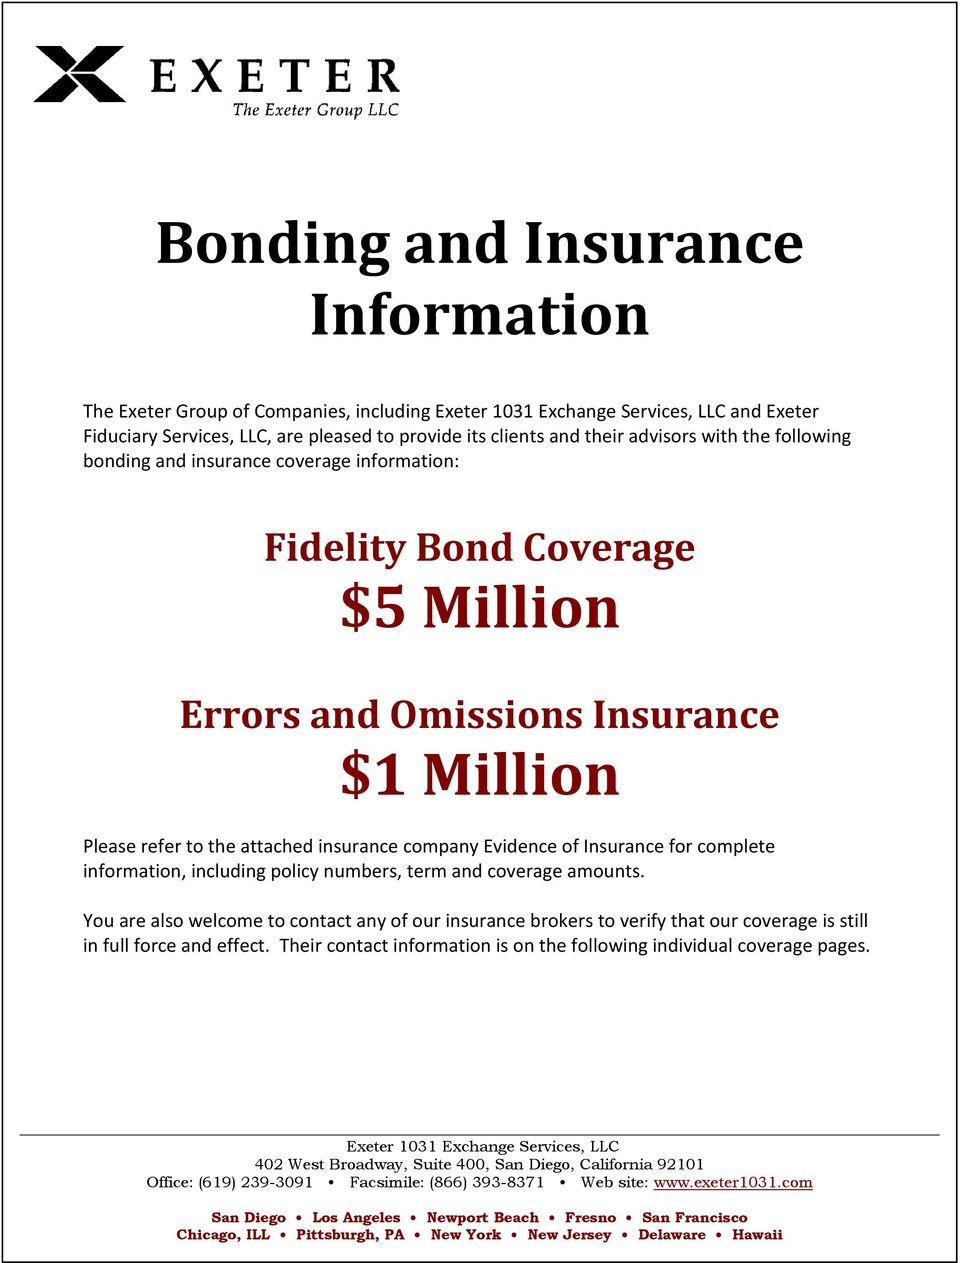 Insurance for complete information, including policy numbers, term and coverage amounts.